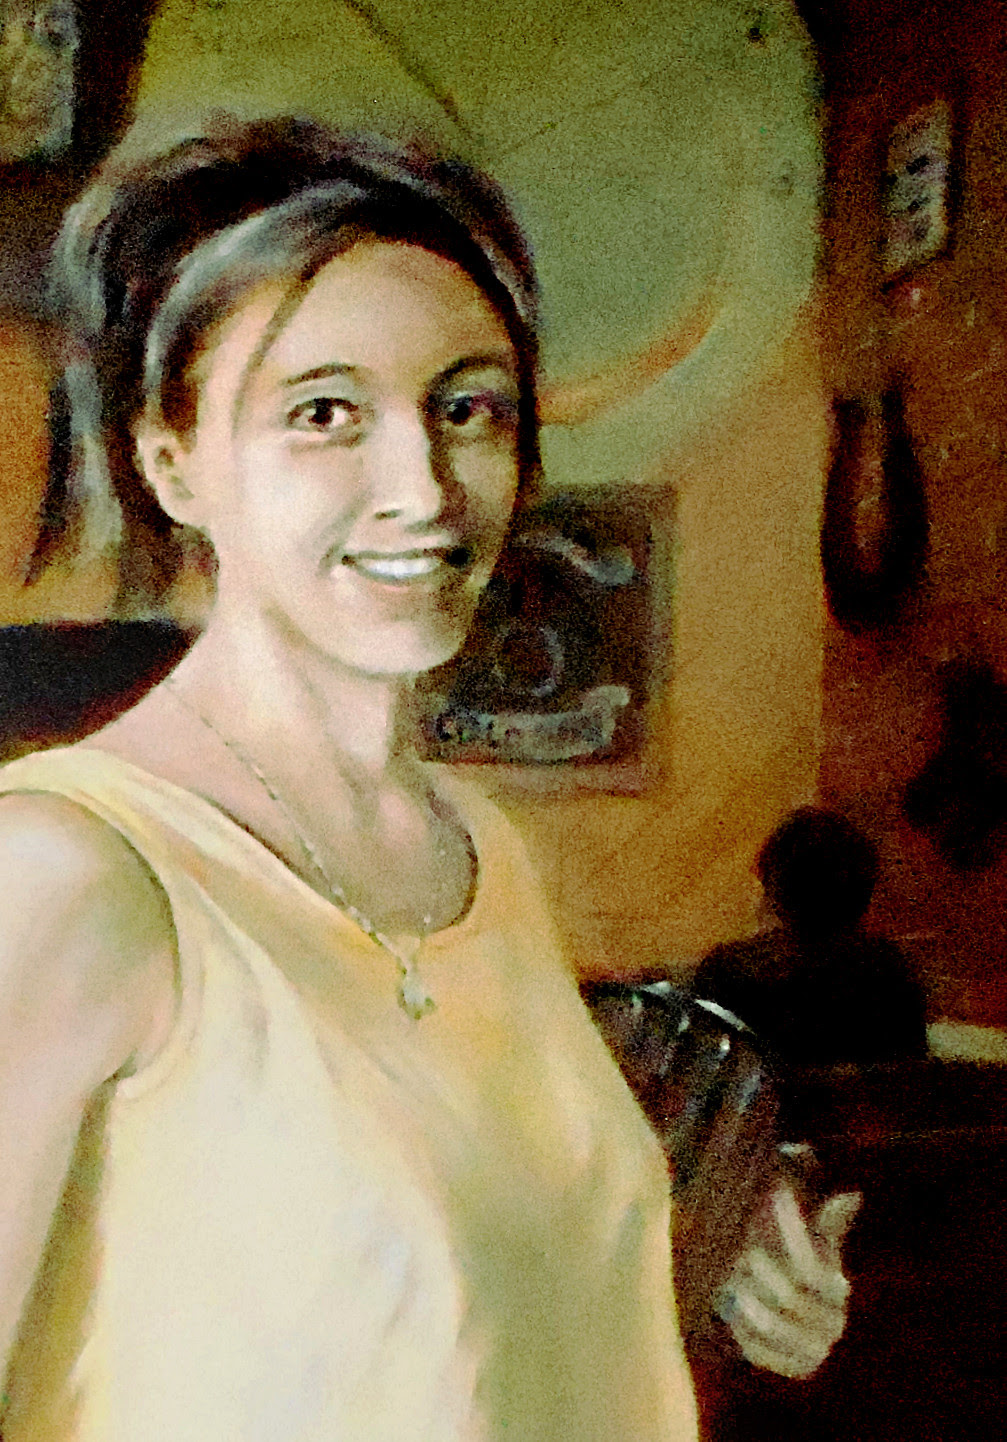 Portrait of Shannon, Young Woman Working in a Bar, $1100, 20x30 inches, classical frame; $20 to $30, medium-size prints, free downloads.  ...Shannon, a favorite bartender, Frederick, Maryland. Multimedia classical traditional modern acrylic oil ‪‎painting‬s. ‬‎GrlFineArt ‪‎art ‪‎fineart ‪‎painting, room decor, ‪‎painting‬s, prints, portraits, figures,  figurative